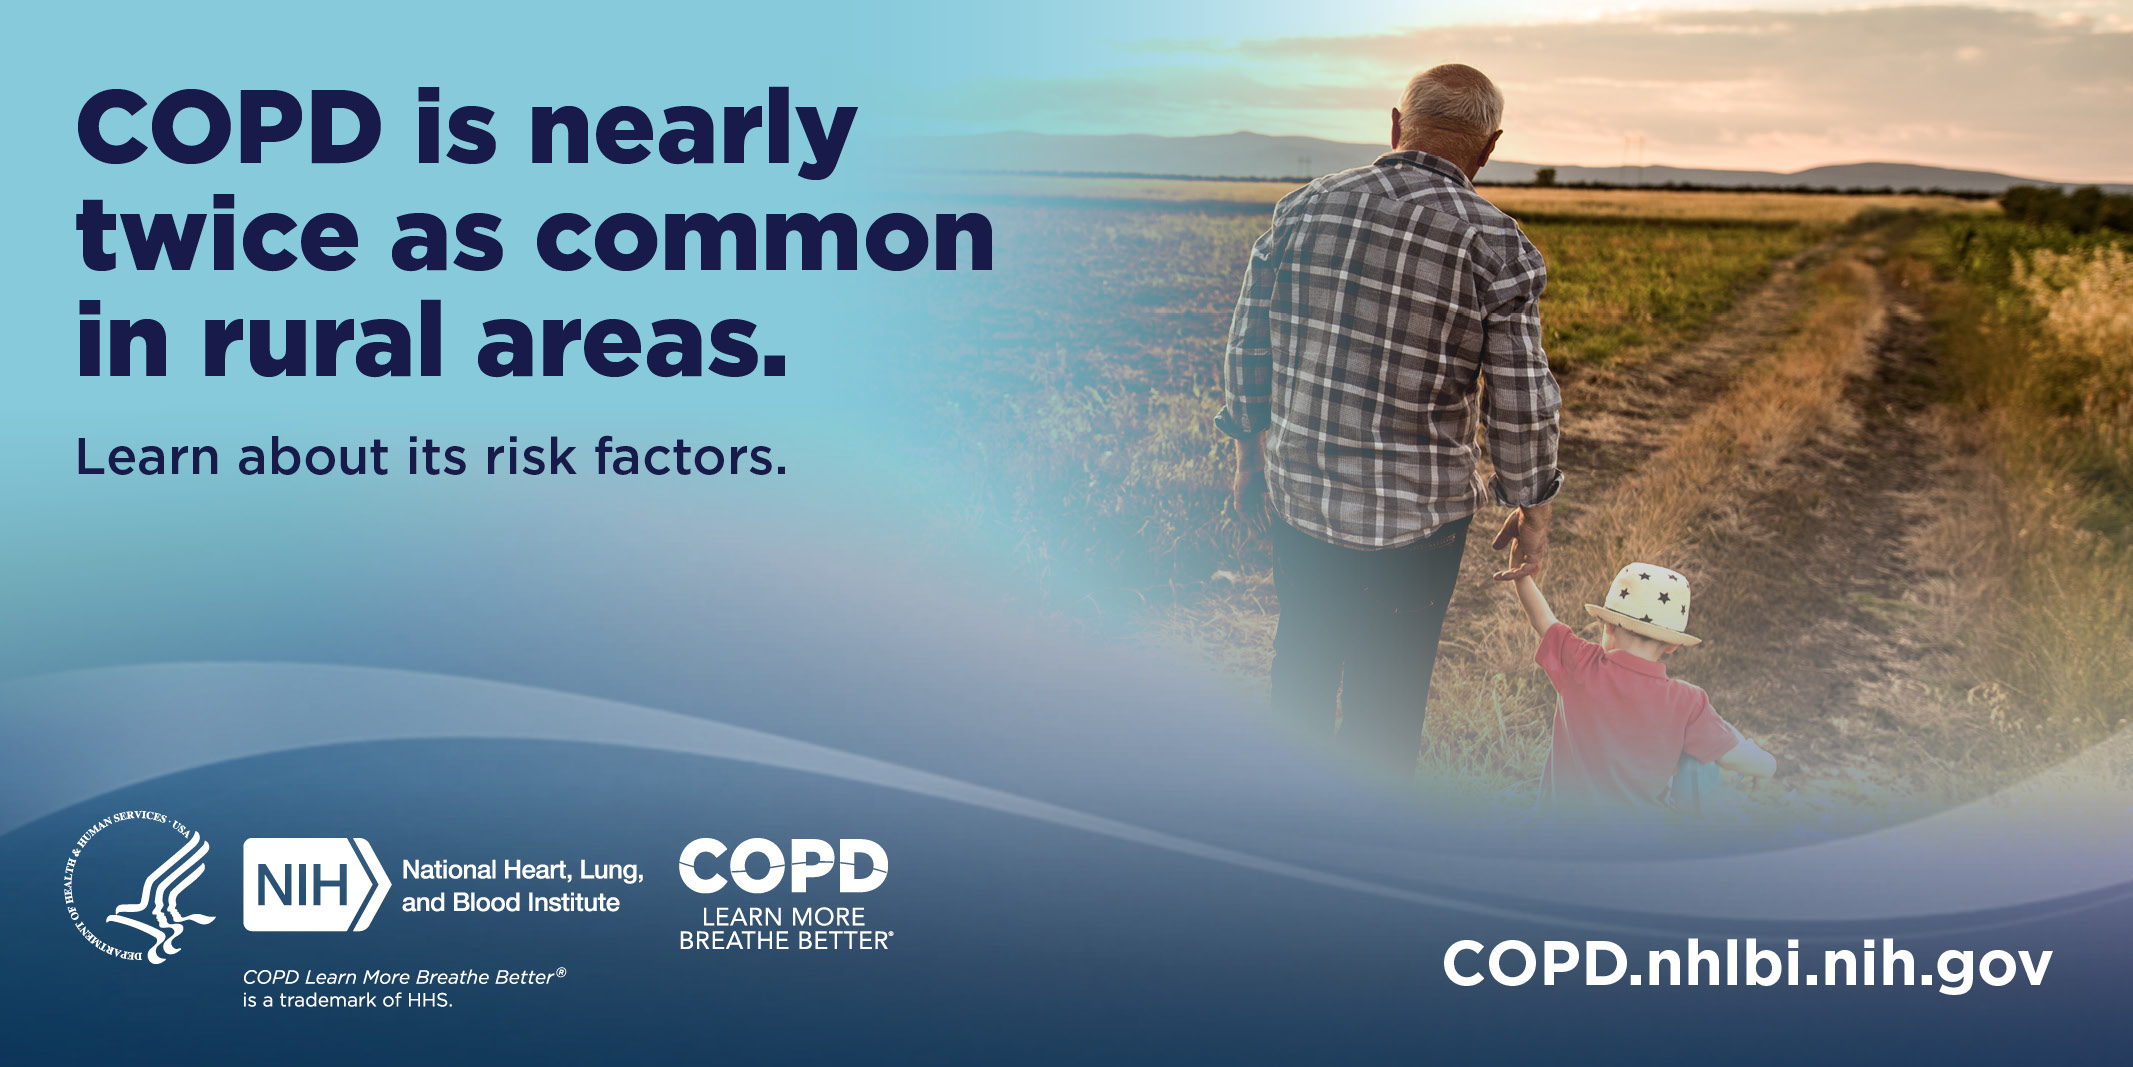 COPD is nearly twice as common in rural areas. Learn about its risk factors. COPD.nhlbi.nih.gov.